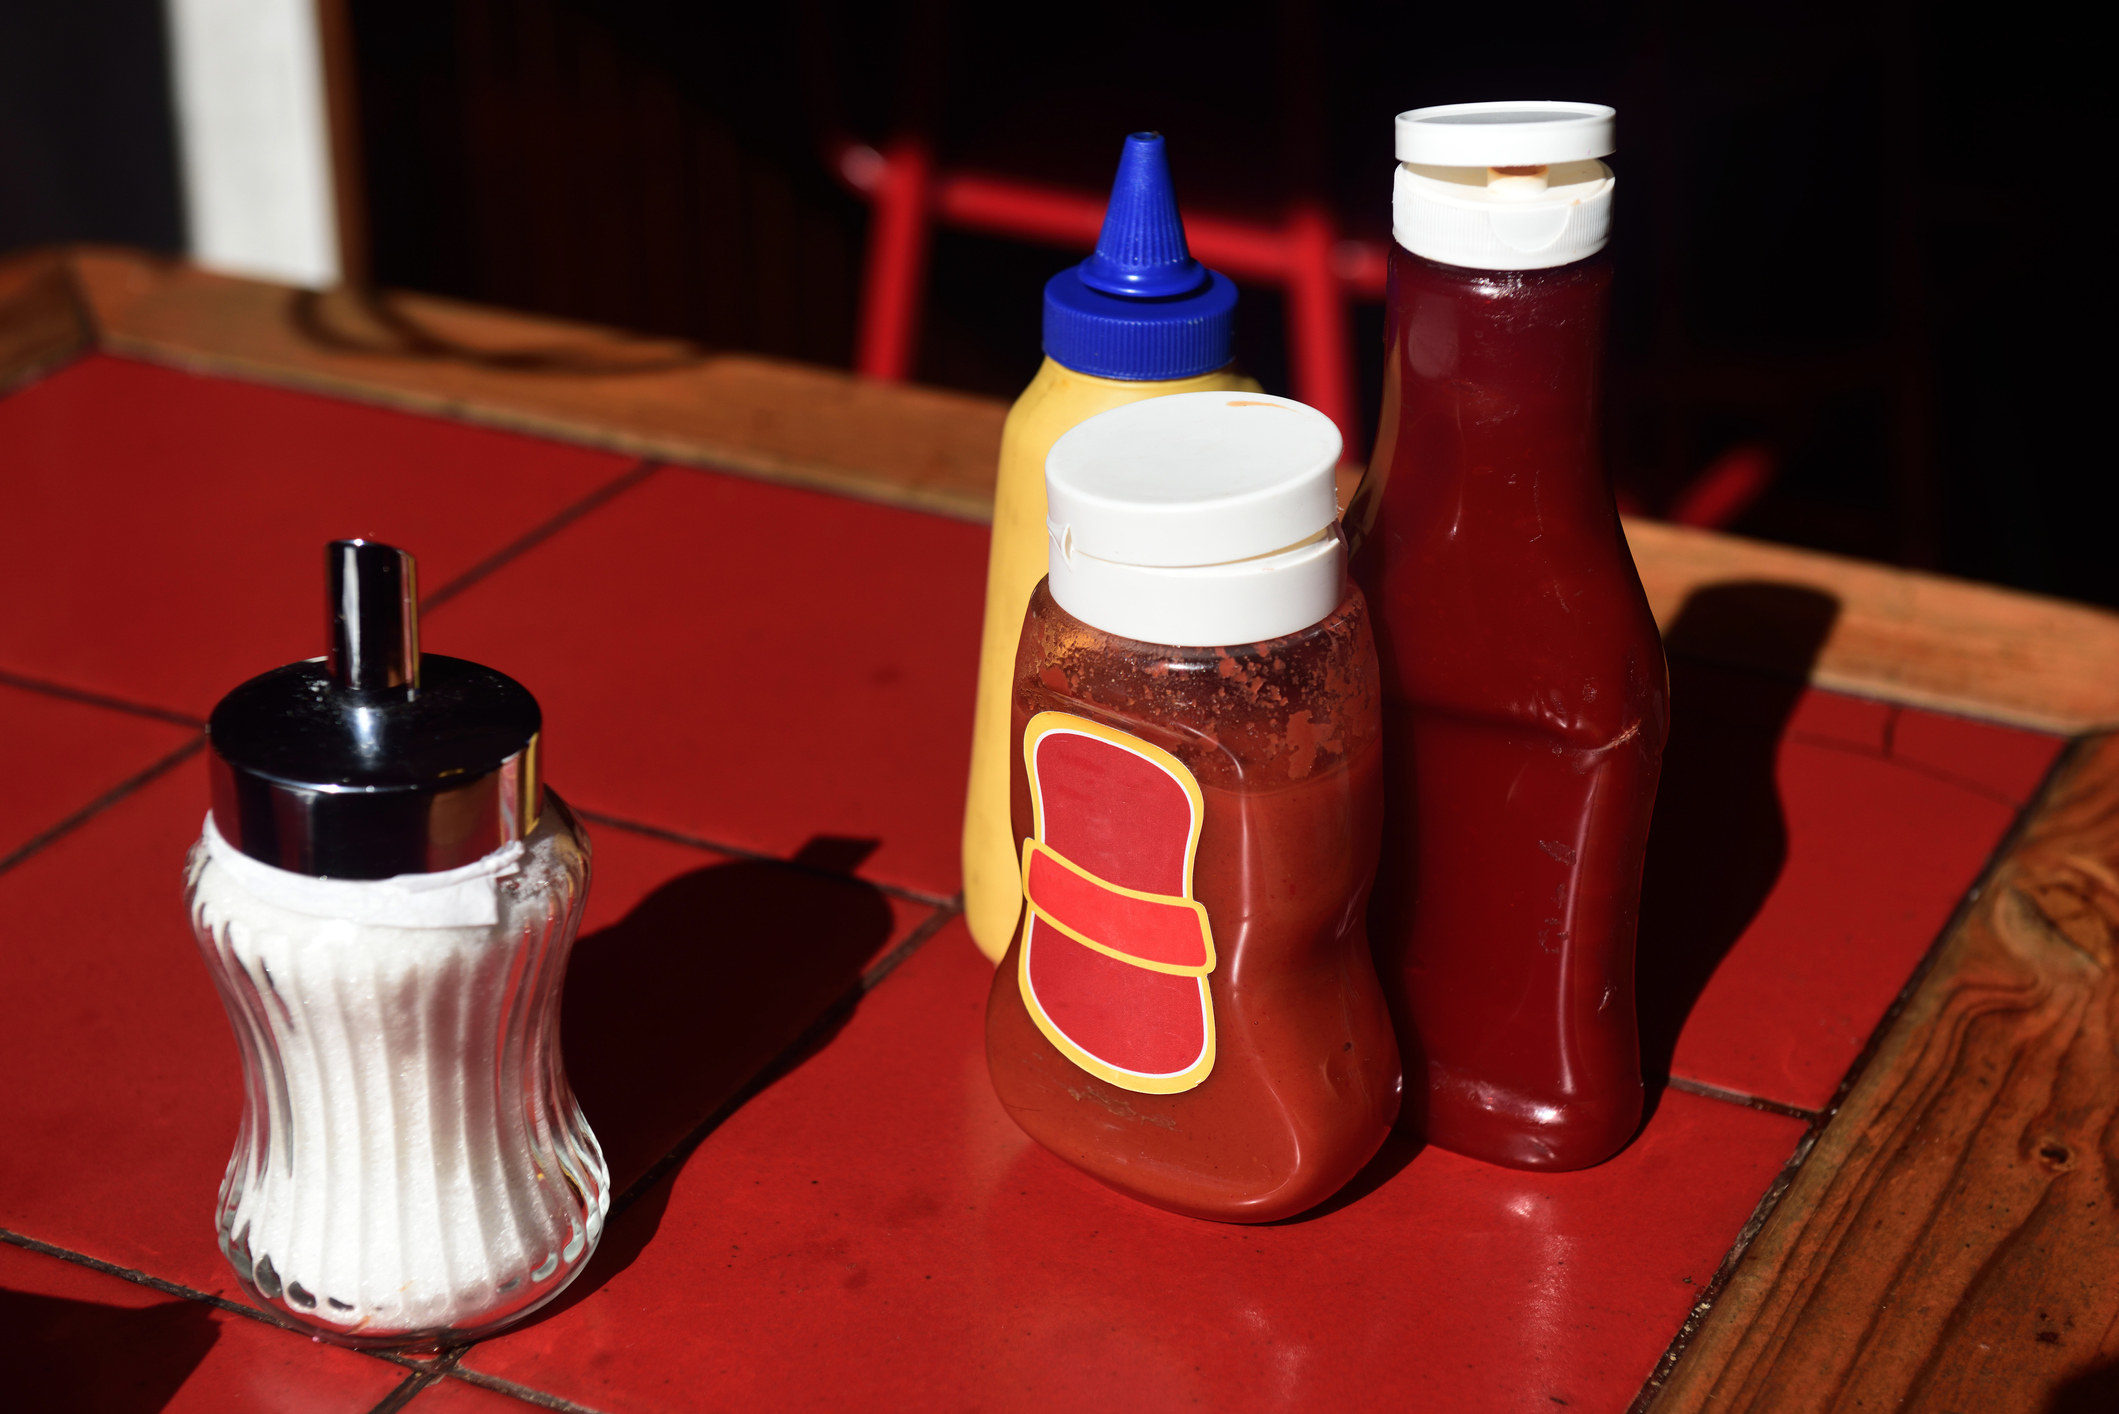 ketchup on a table